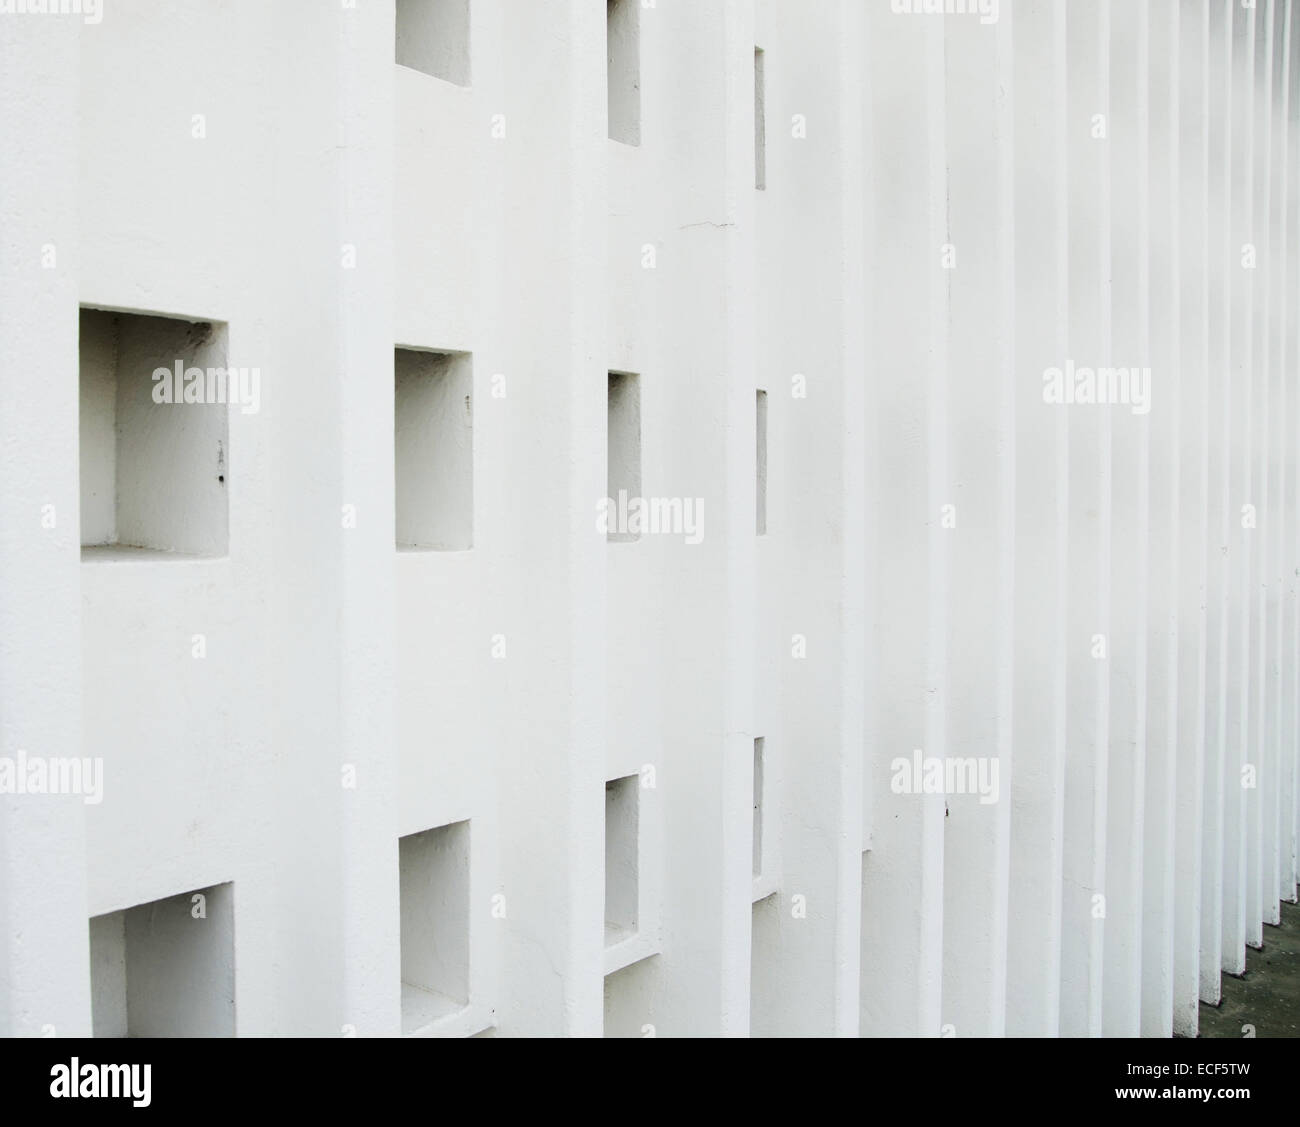 Ventilation void on concrete wall - Stock Image